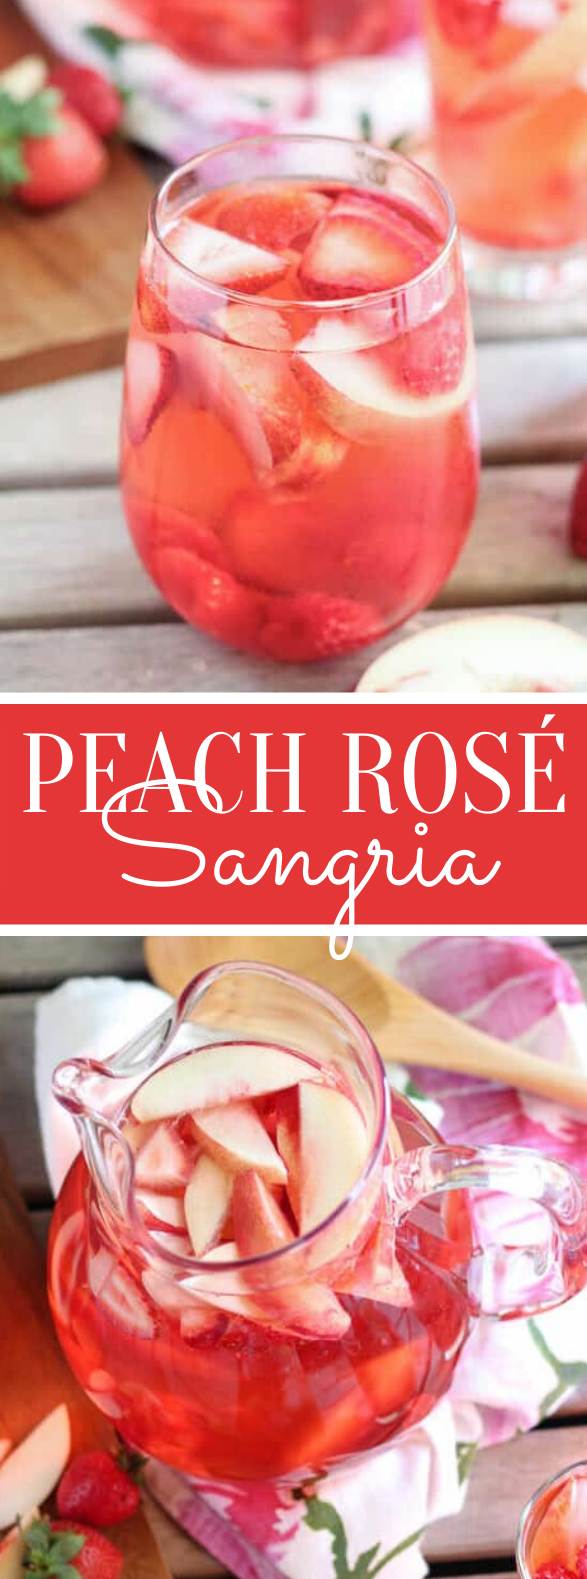 PEACH ROSÉ SANGRIA #drinks #summer